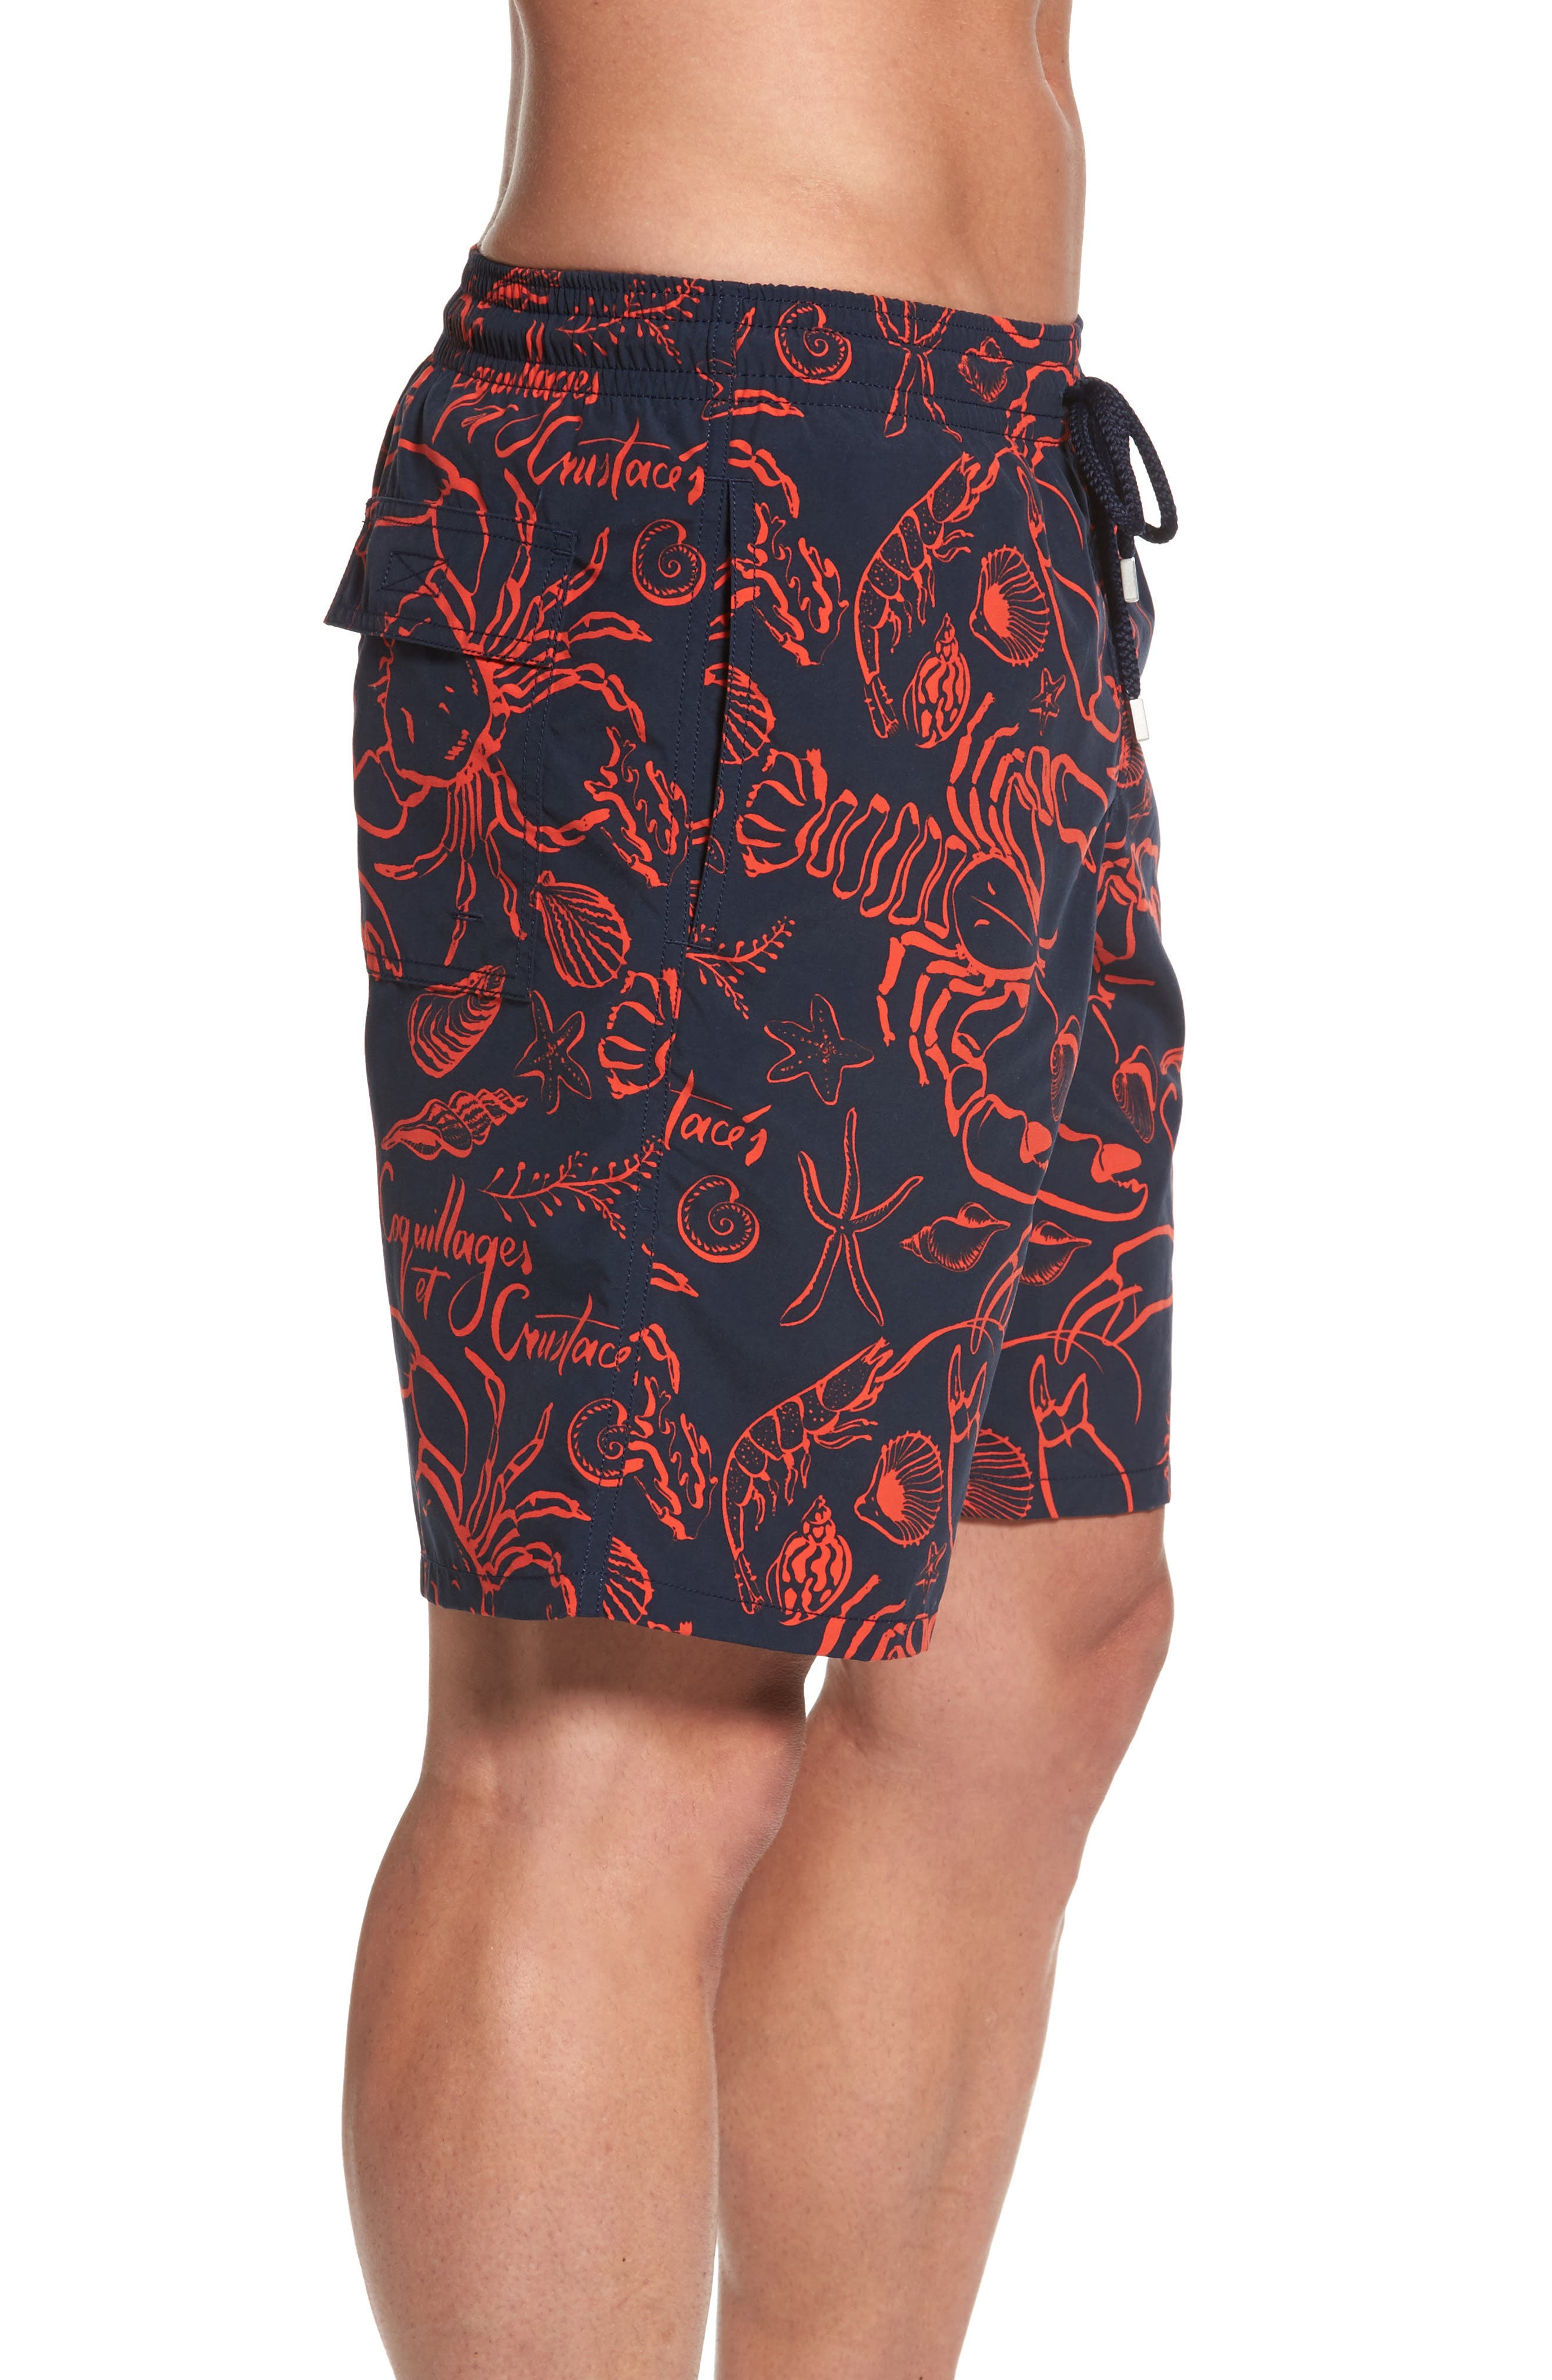 Okoa Shellfish Swim Trunks,                             Alternate thumbnail 3, color,                             NAVY BLUE